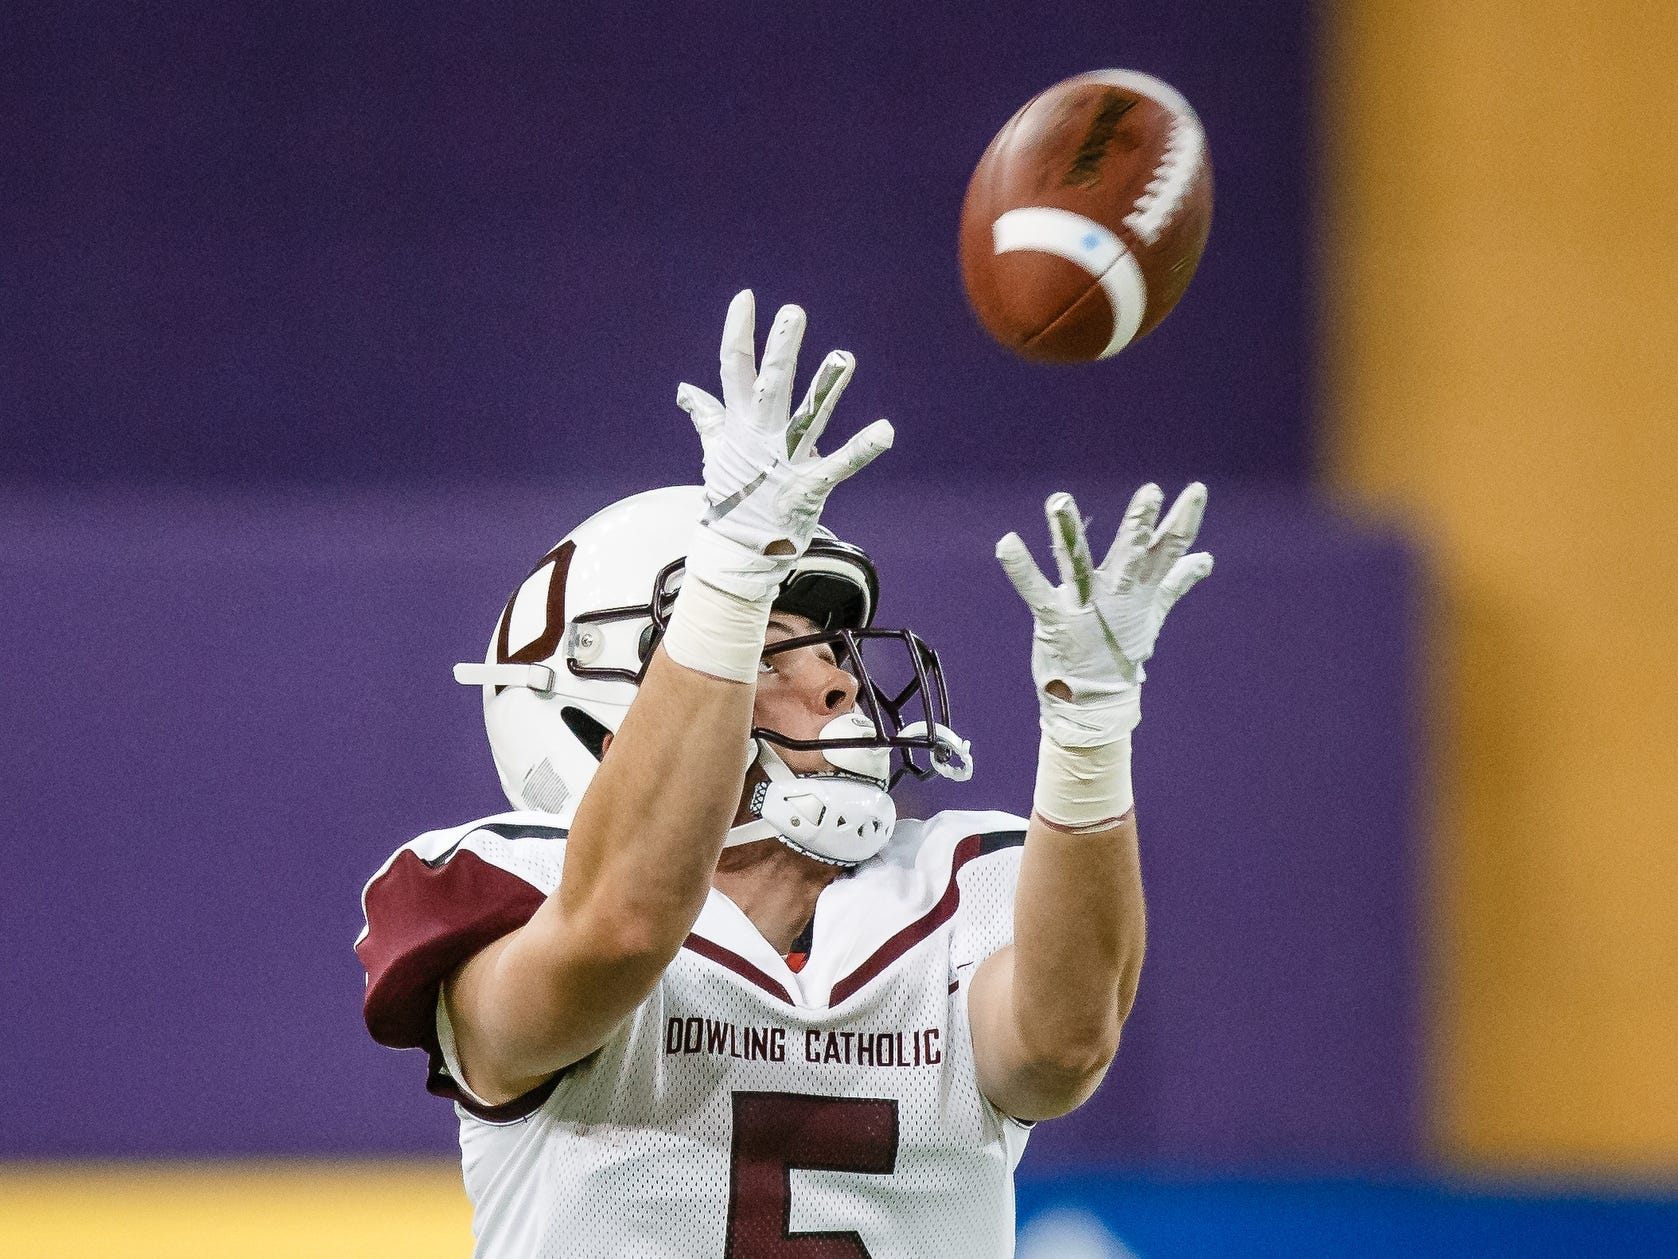 Dowling Catholic's Collin Cook (5) catches a pass during their class 4A state championship football game against Cedar Falls on Friday, Nov. 16, 2018, in Cedar Falls. Cedar Falls takes a 13-7 lead into halftime.